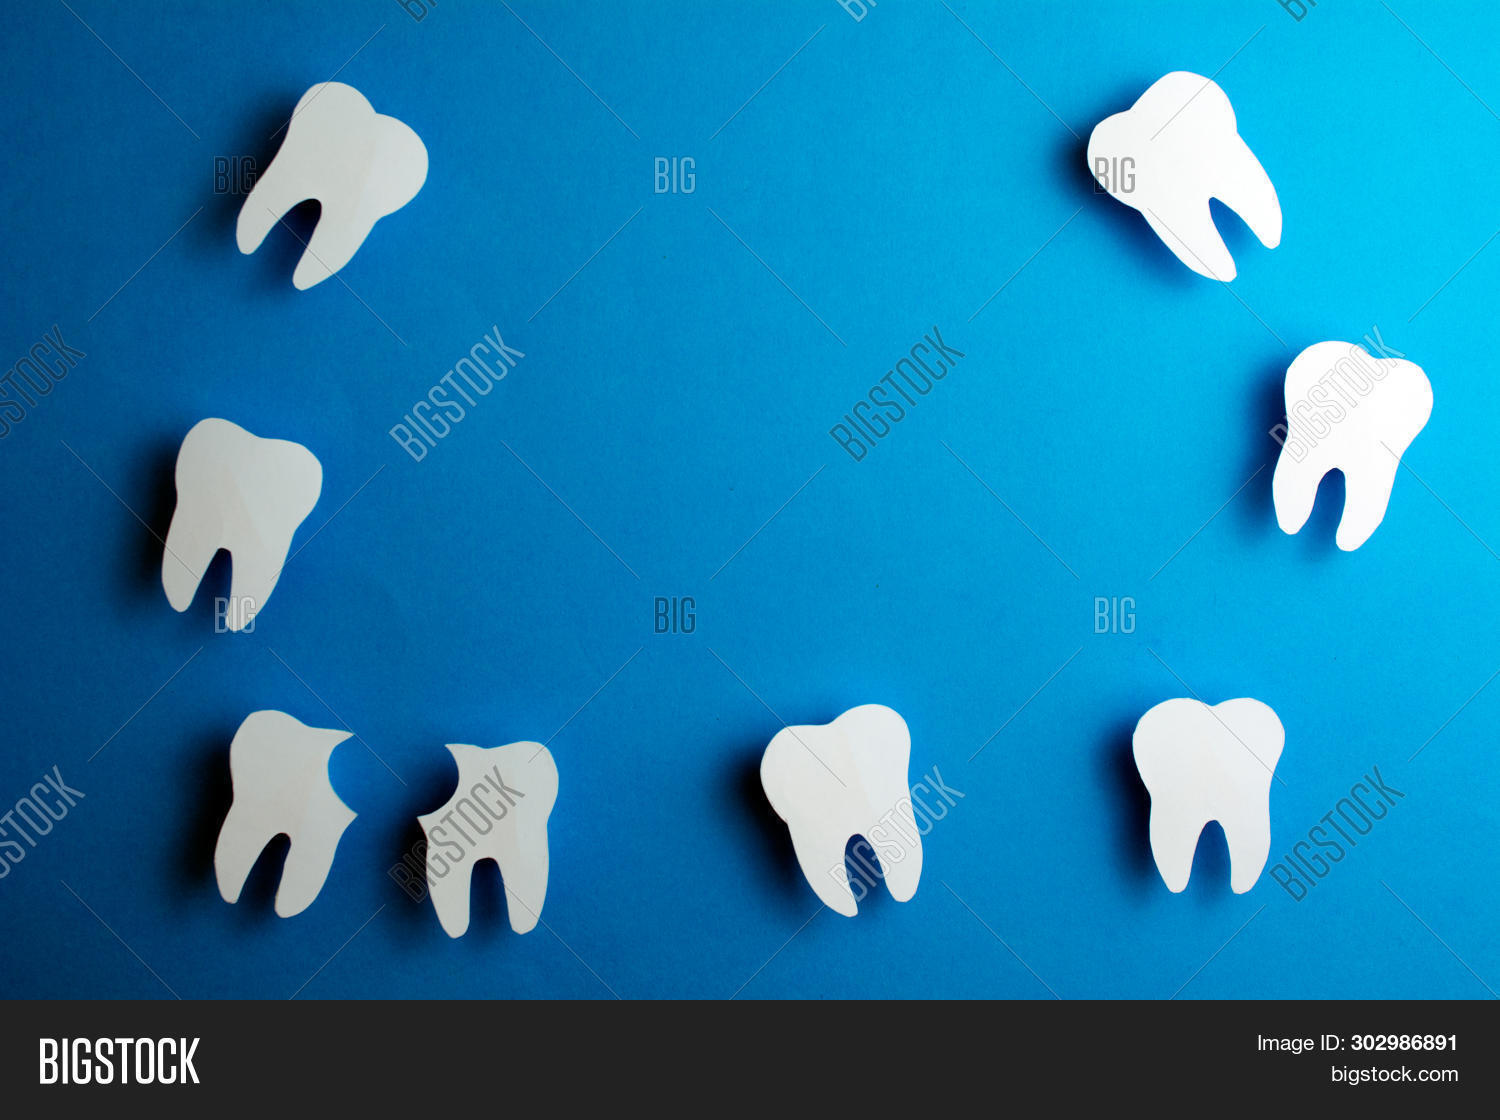 background,care,clean,closeup,concept,dental,dentist,dentistry,health,healthy,hygiene,implant,medical,medicine,mouth,oral,perfect,smile,stomatology,teeth,tooth,toothache,treatment,white,whitening